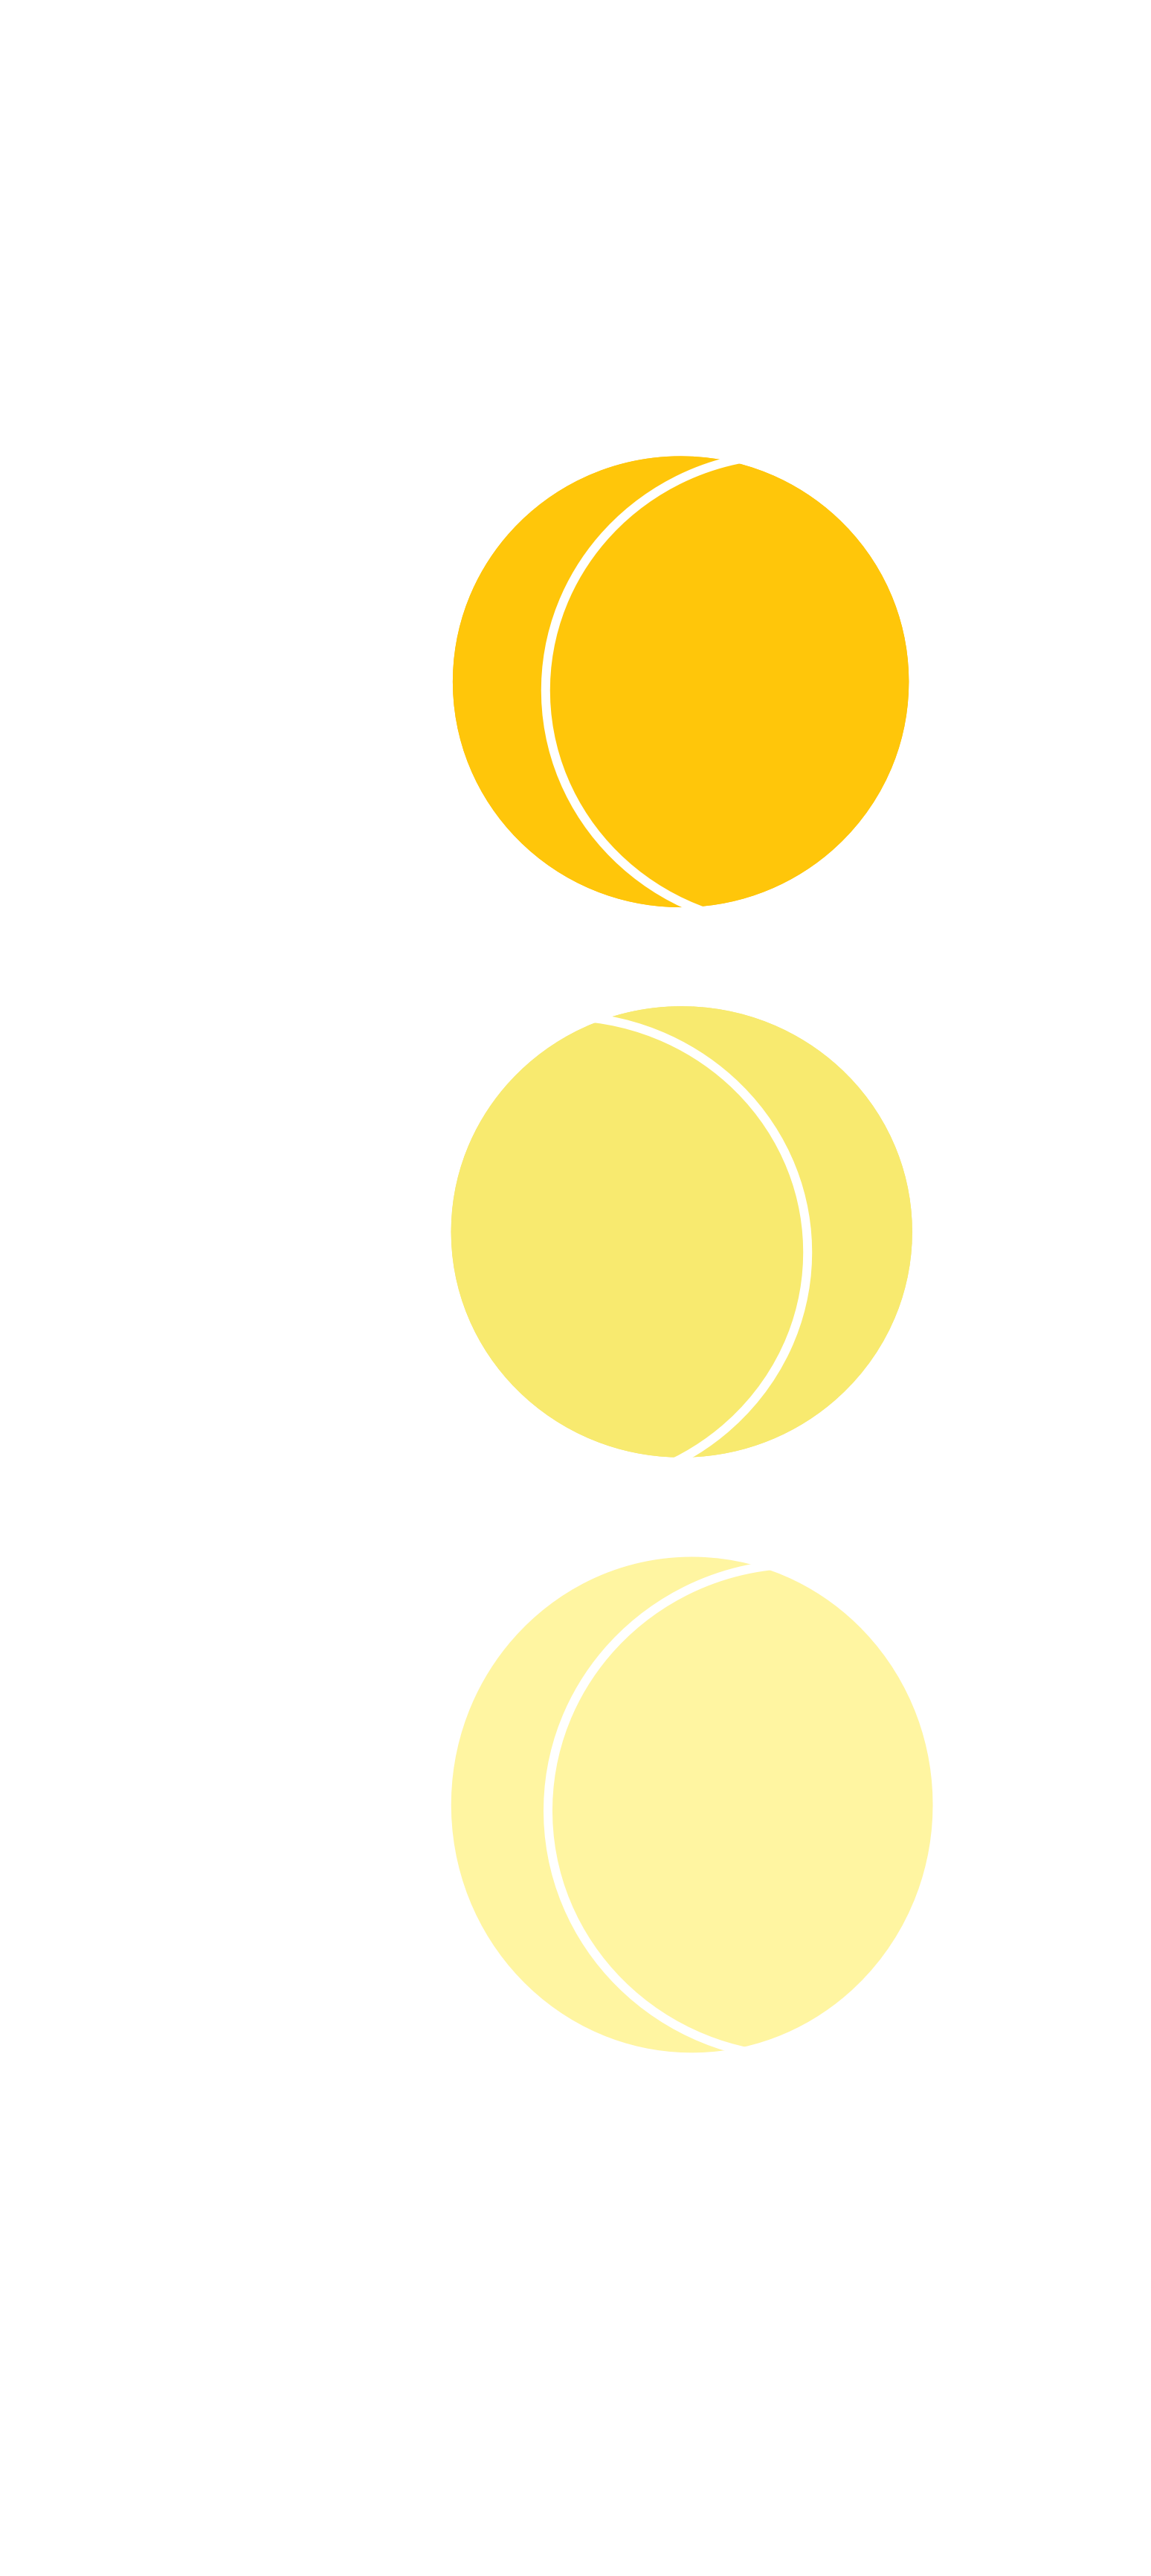 Aesthetic Aestheticyellow Yellow Colorpalette Palette Pastel Circle Circleyellow Freetoedit Yellow Aesthetic Pastel Yellow Aesthetic Pastel Aesthetic